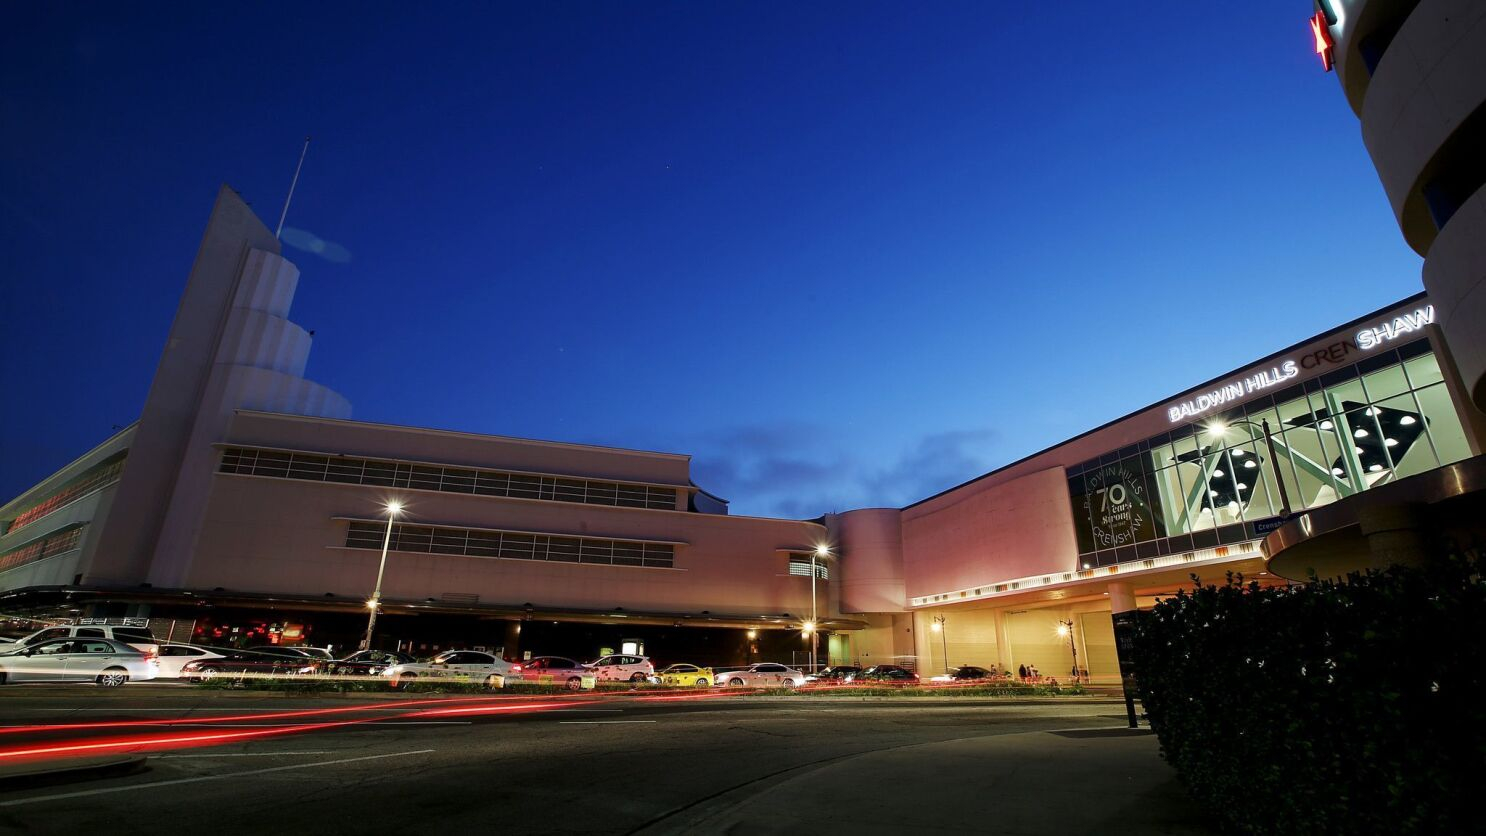 Baldwin Hills Crenshaw Plaza mall sold to New York developers - Los Angeles  Times